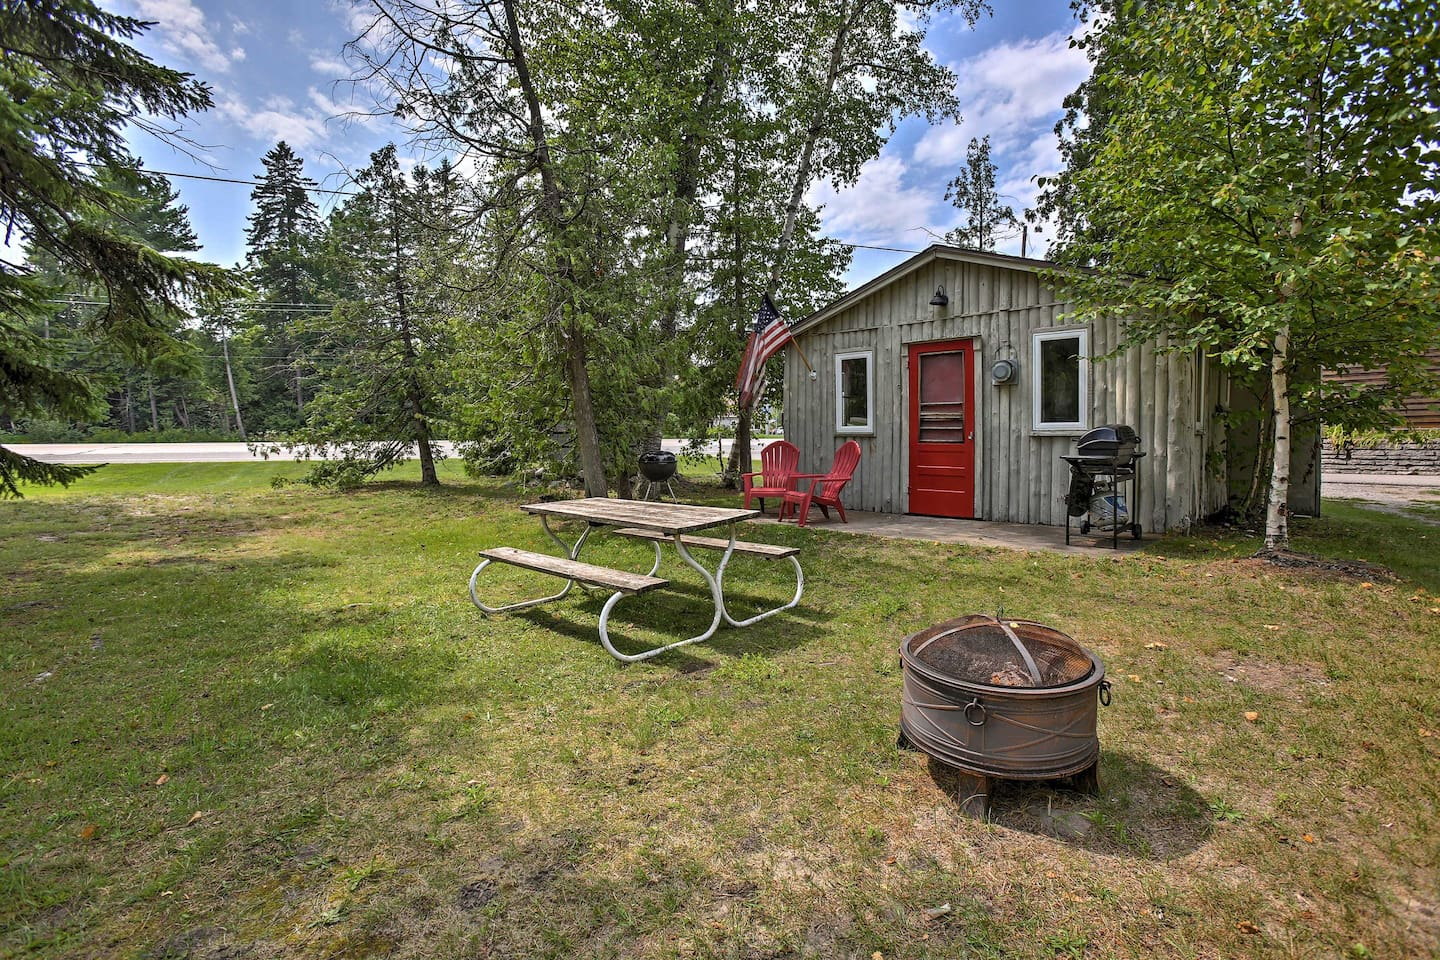 Visit Suttons Bay & stay in this charming 1-bed, 1-bath vacation rental cottage.